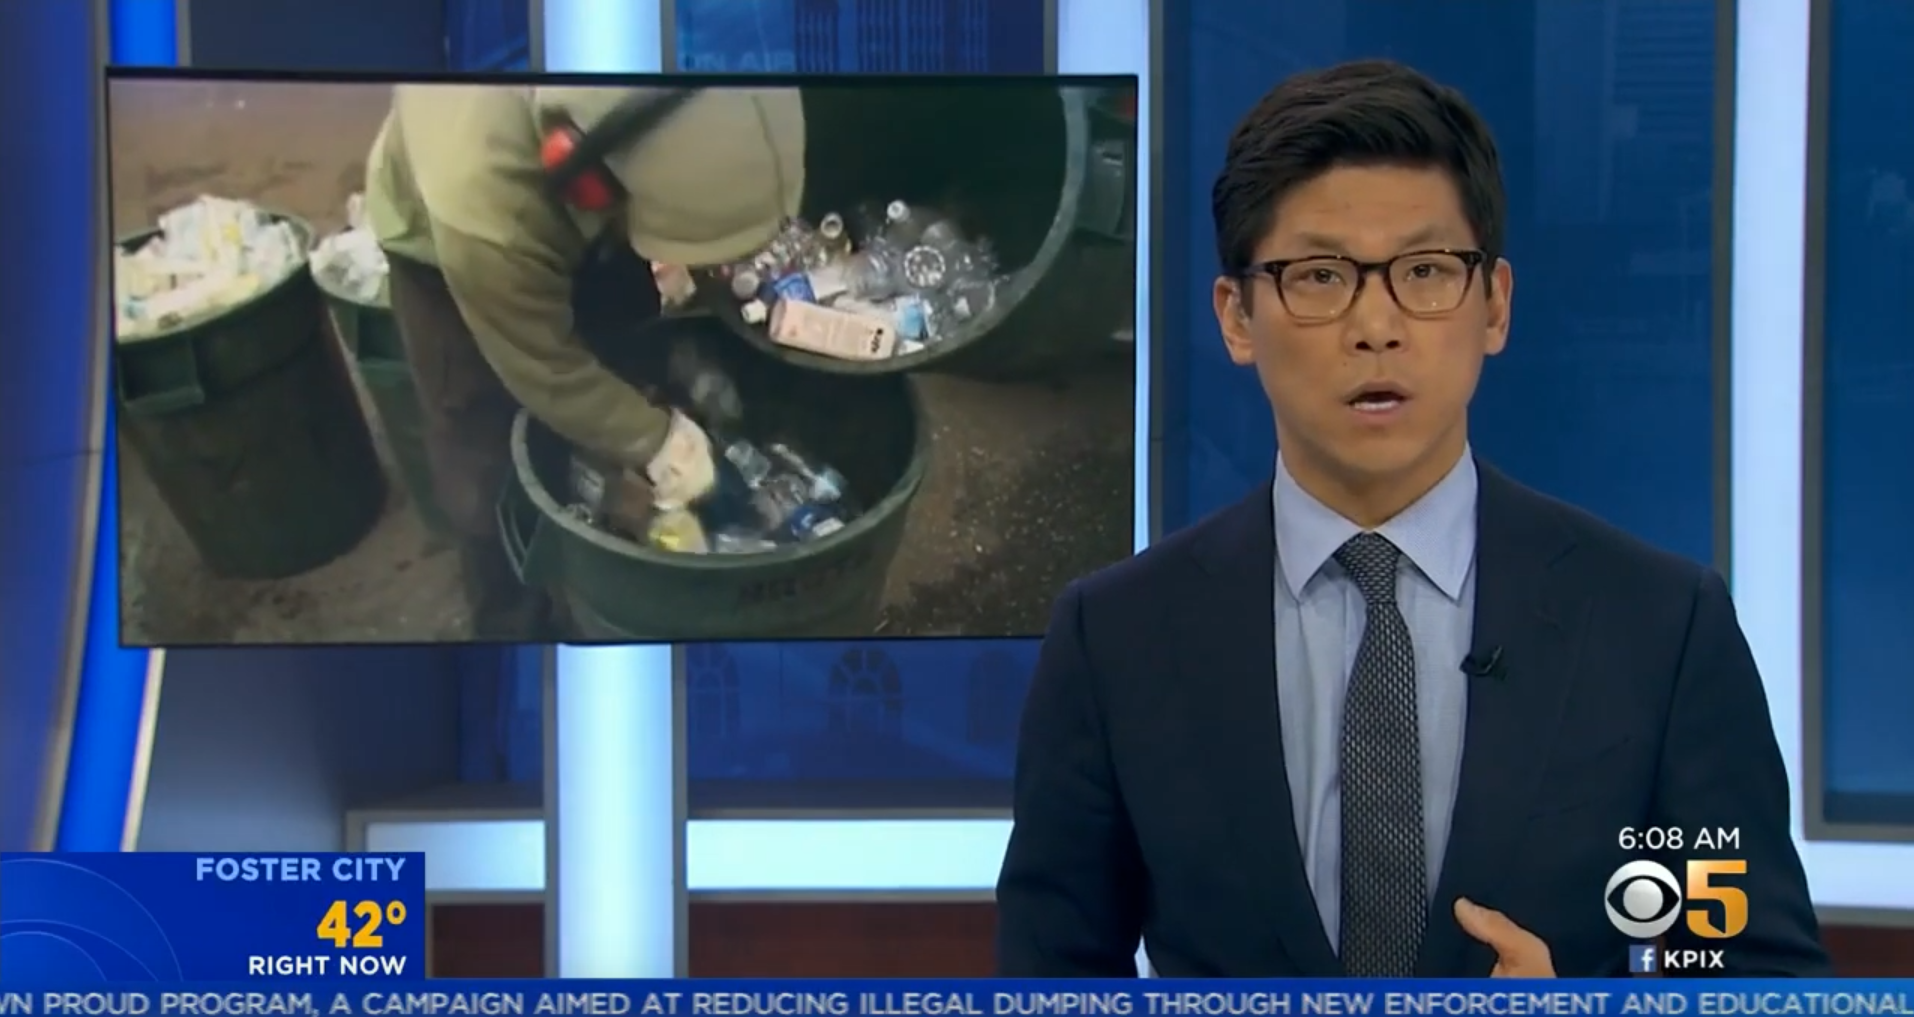 CBS SF Presents Consumer Watchdog's Push for an Overhaul of CA's bottle deposit system